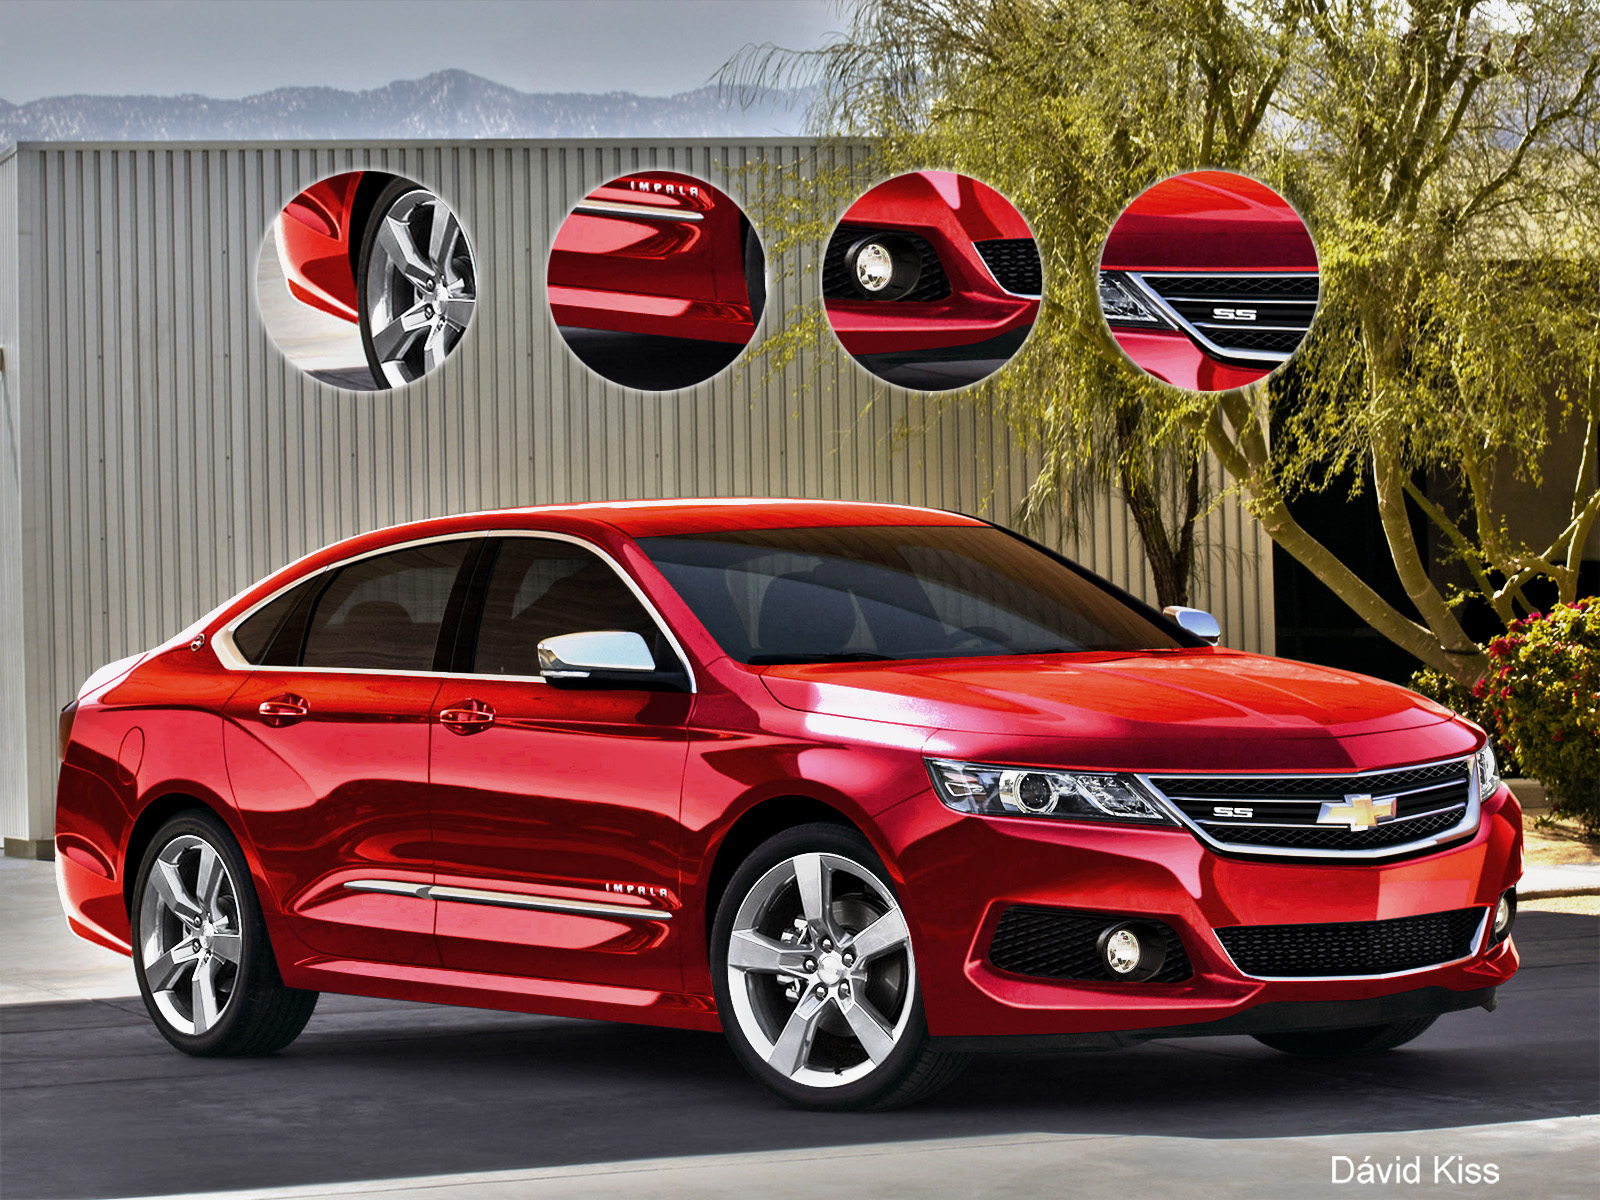 2015 Chevrolet Impala SS | Top Speed